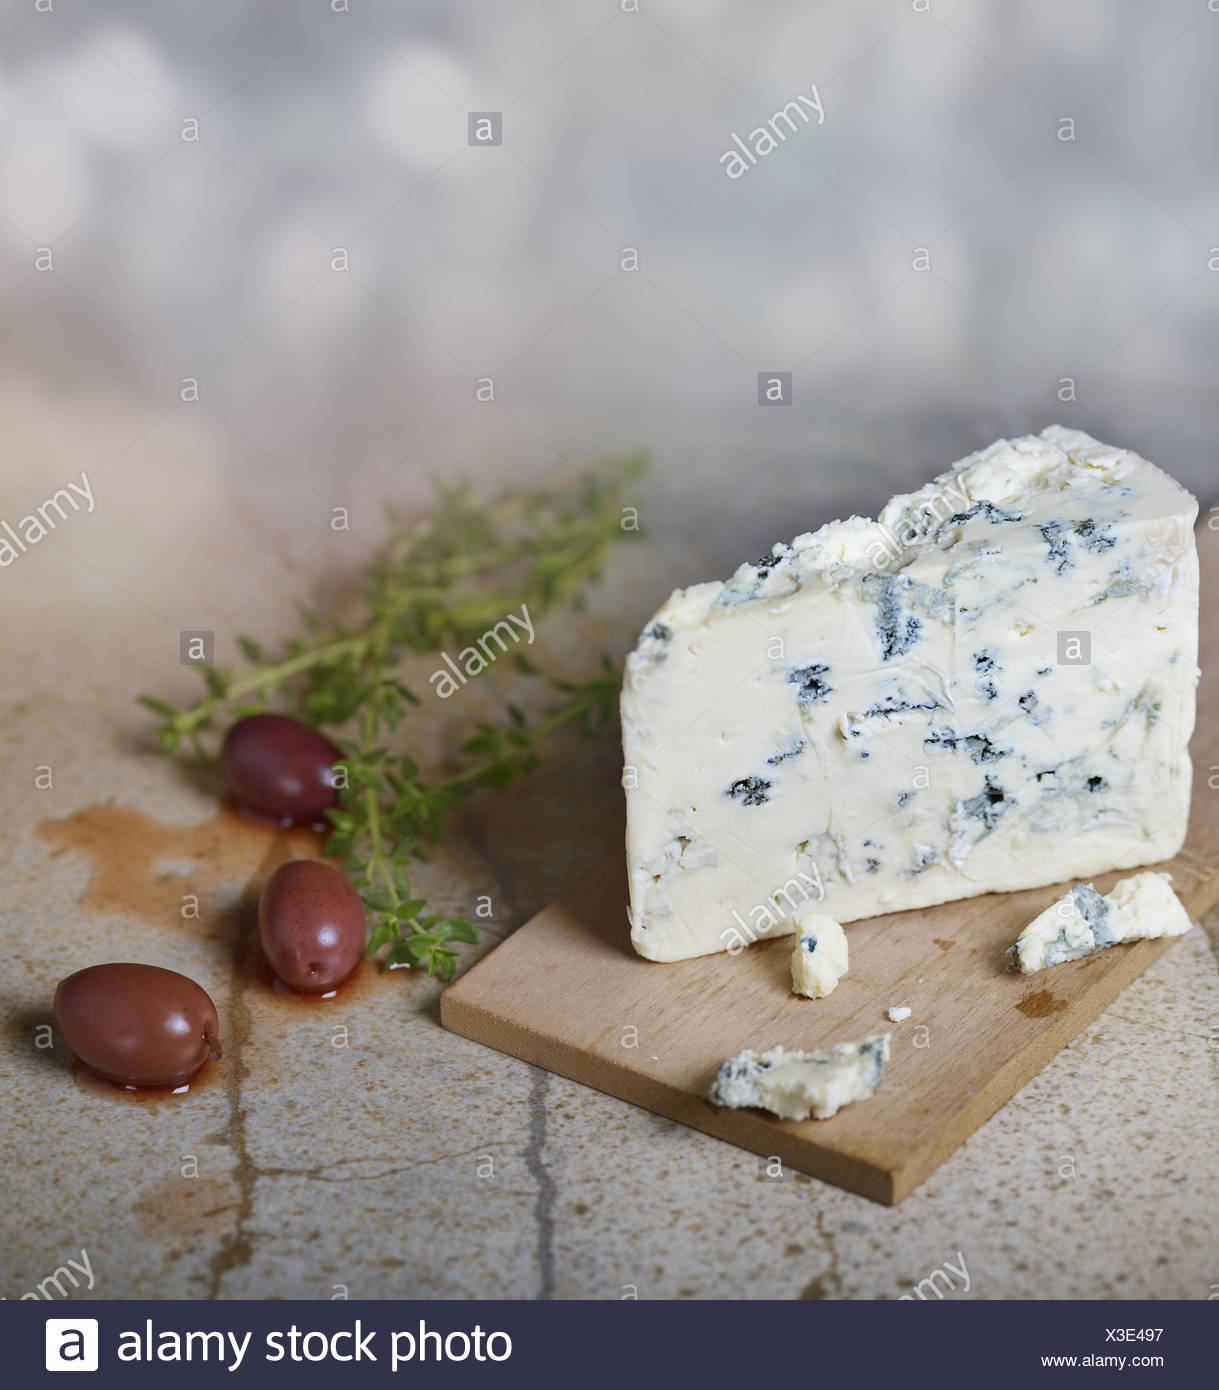 Blue Cheese and Olives - Stock Image